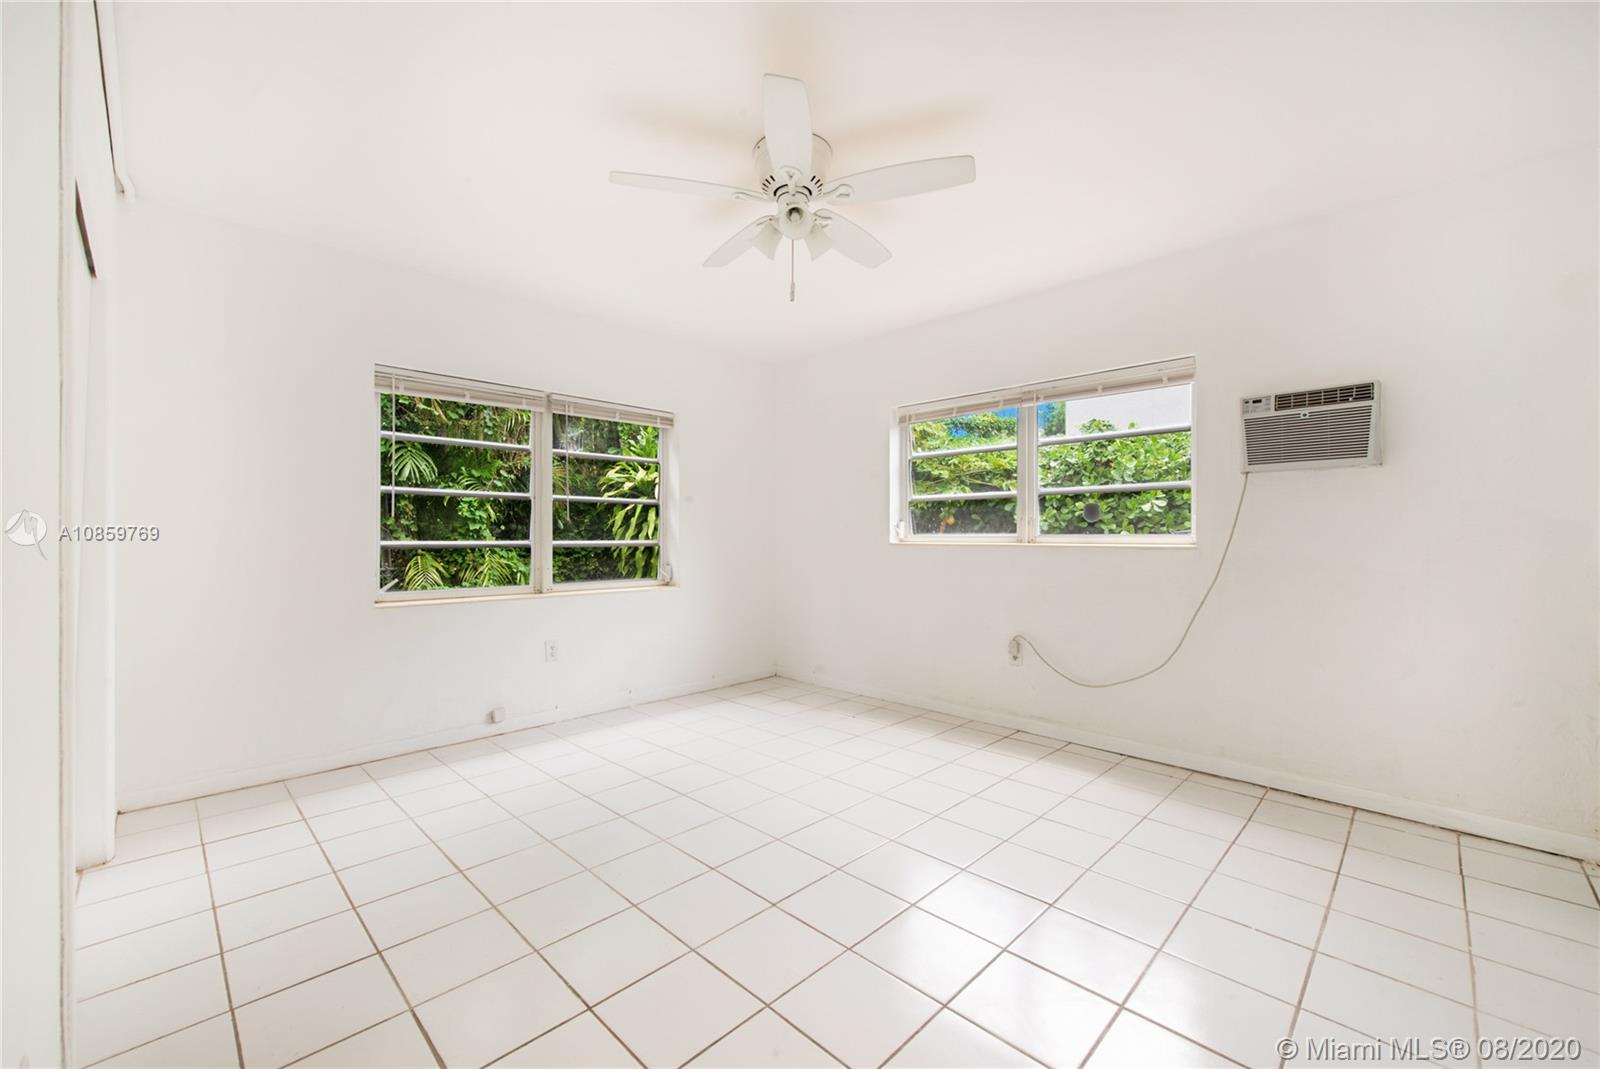 51  Edgewater Dr #4 For Sale A10859769, FL